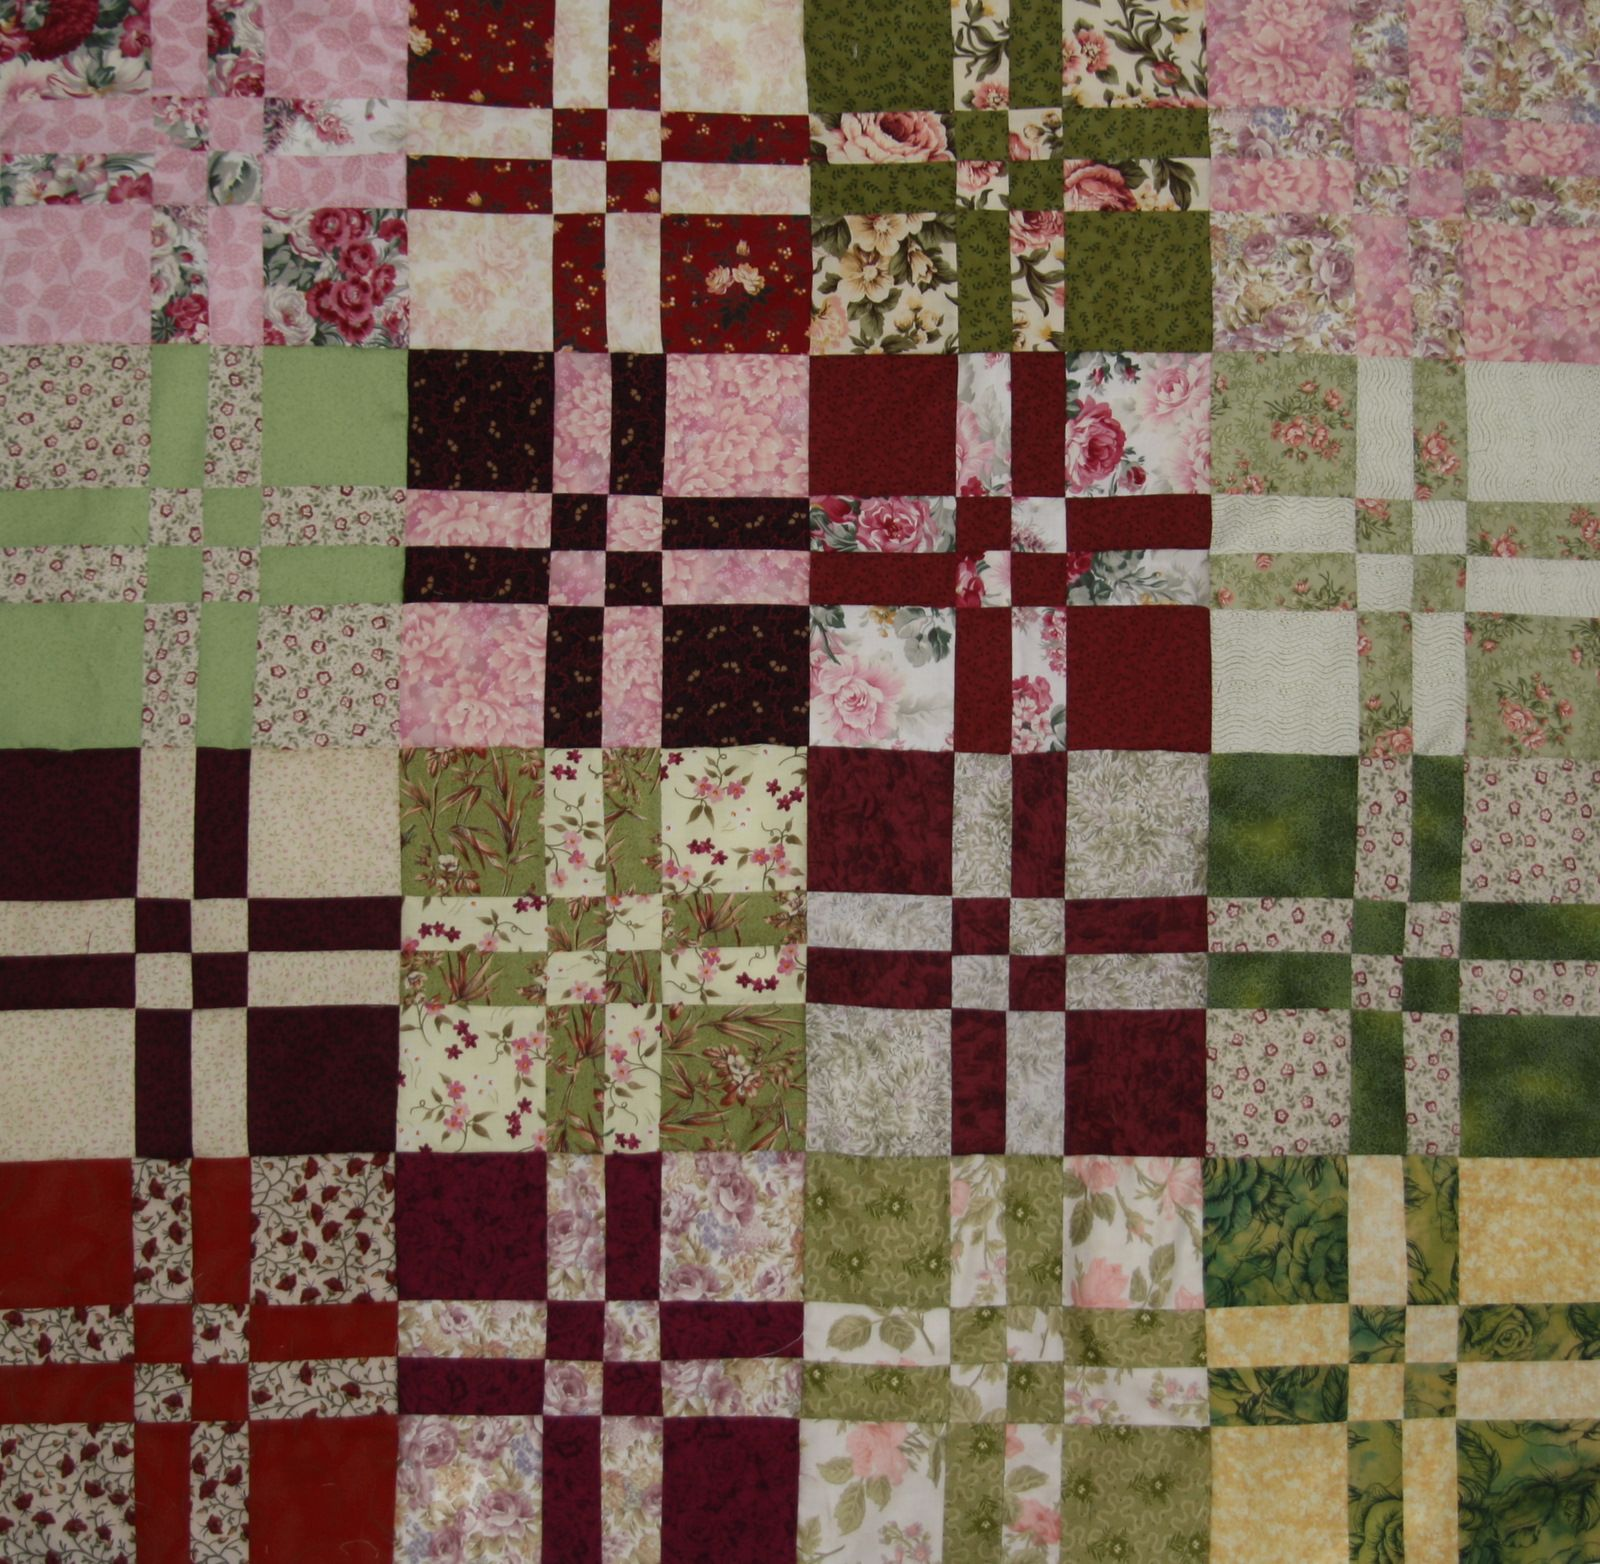 Disappearing Four Patch Quilt Gallery | Beth's Blog: Comfort ... : quilt photos galleries - Adamdwight.com